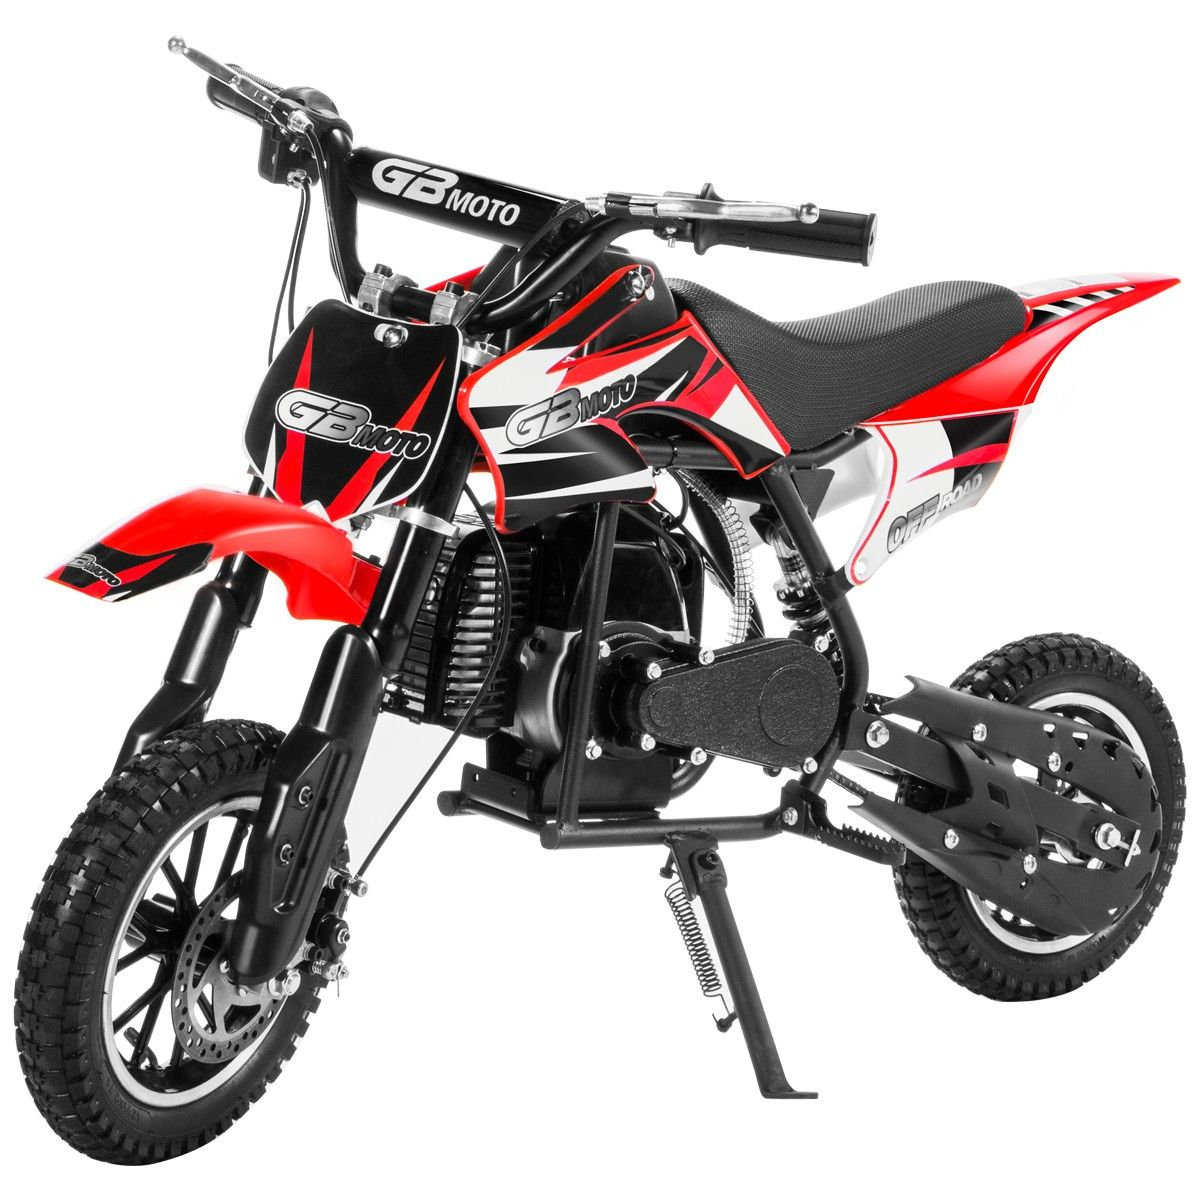 Xtremepowerus 49cc 2 Stroke Gas Power Mini Off Road Dirt Bike